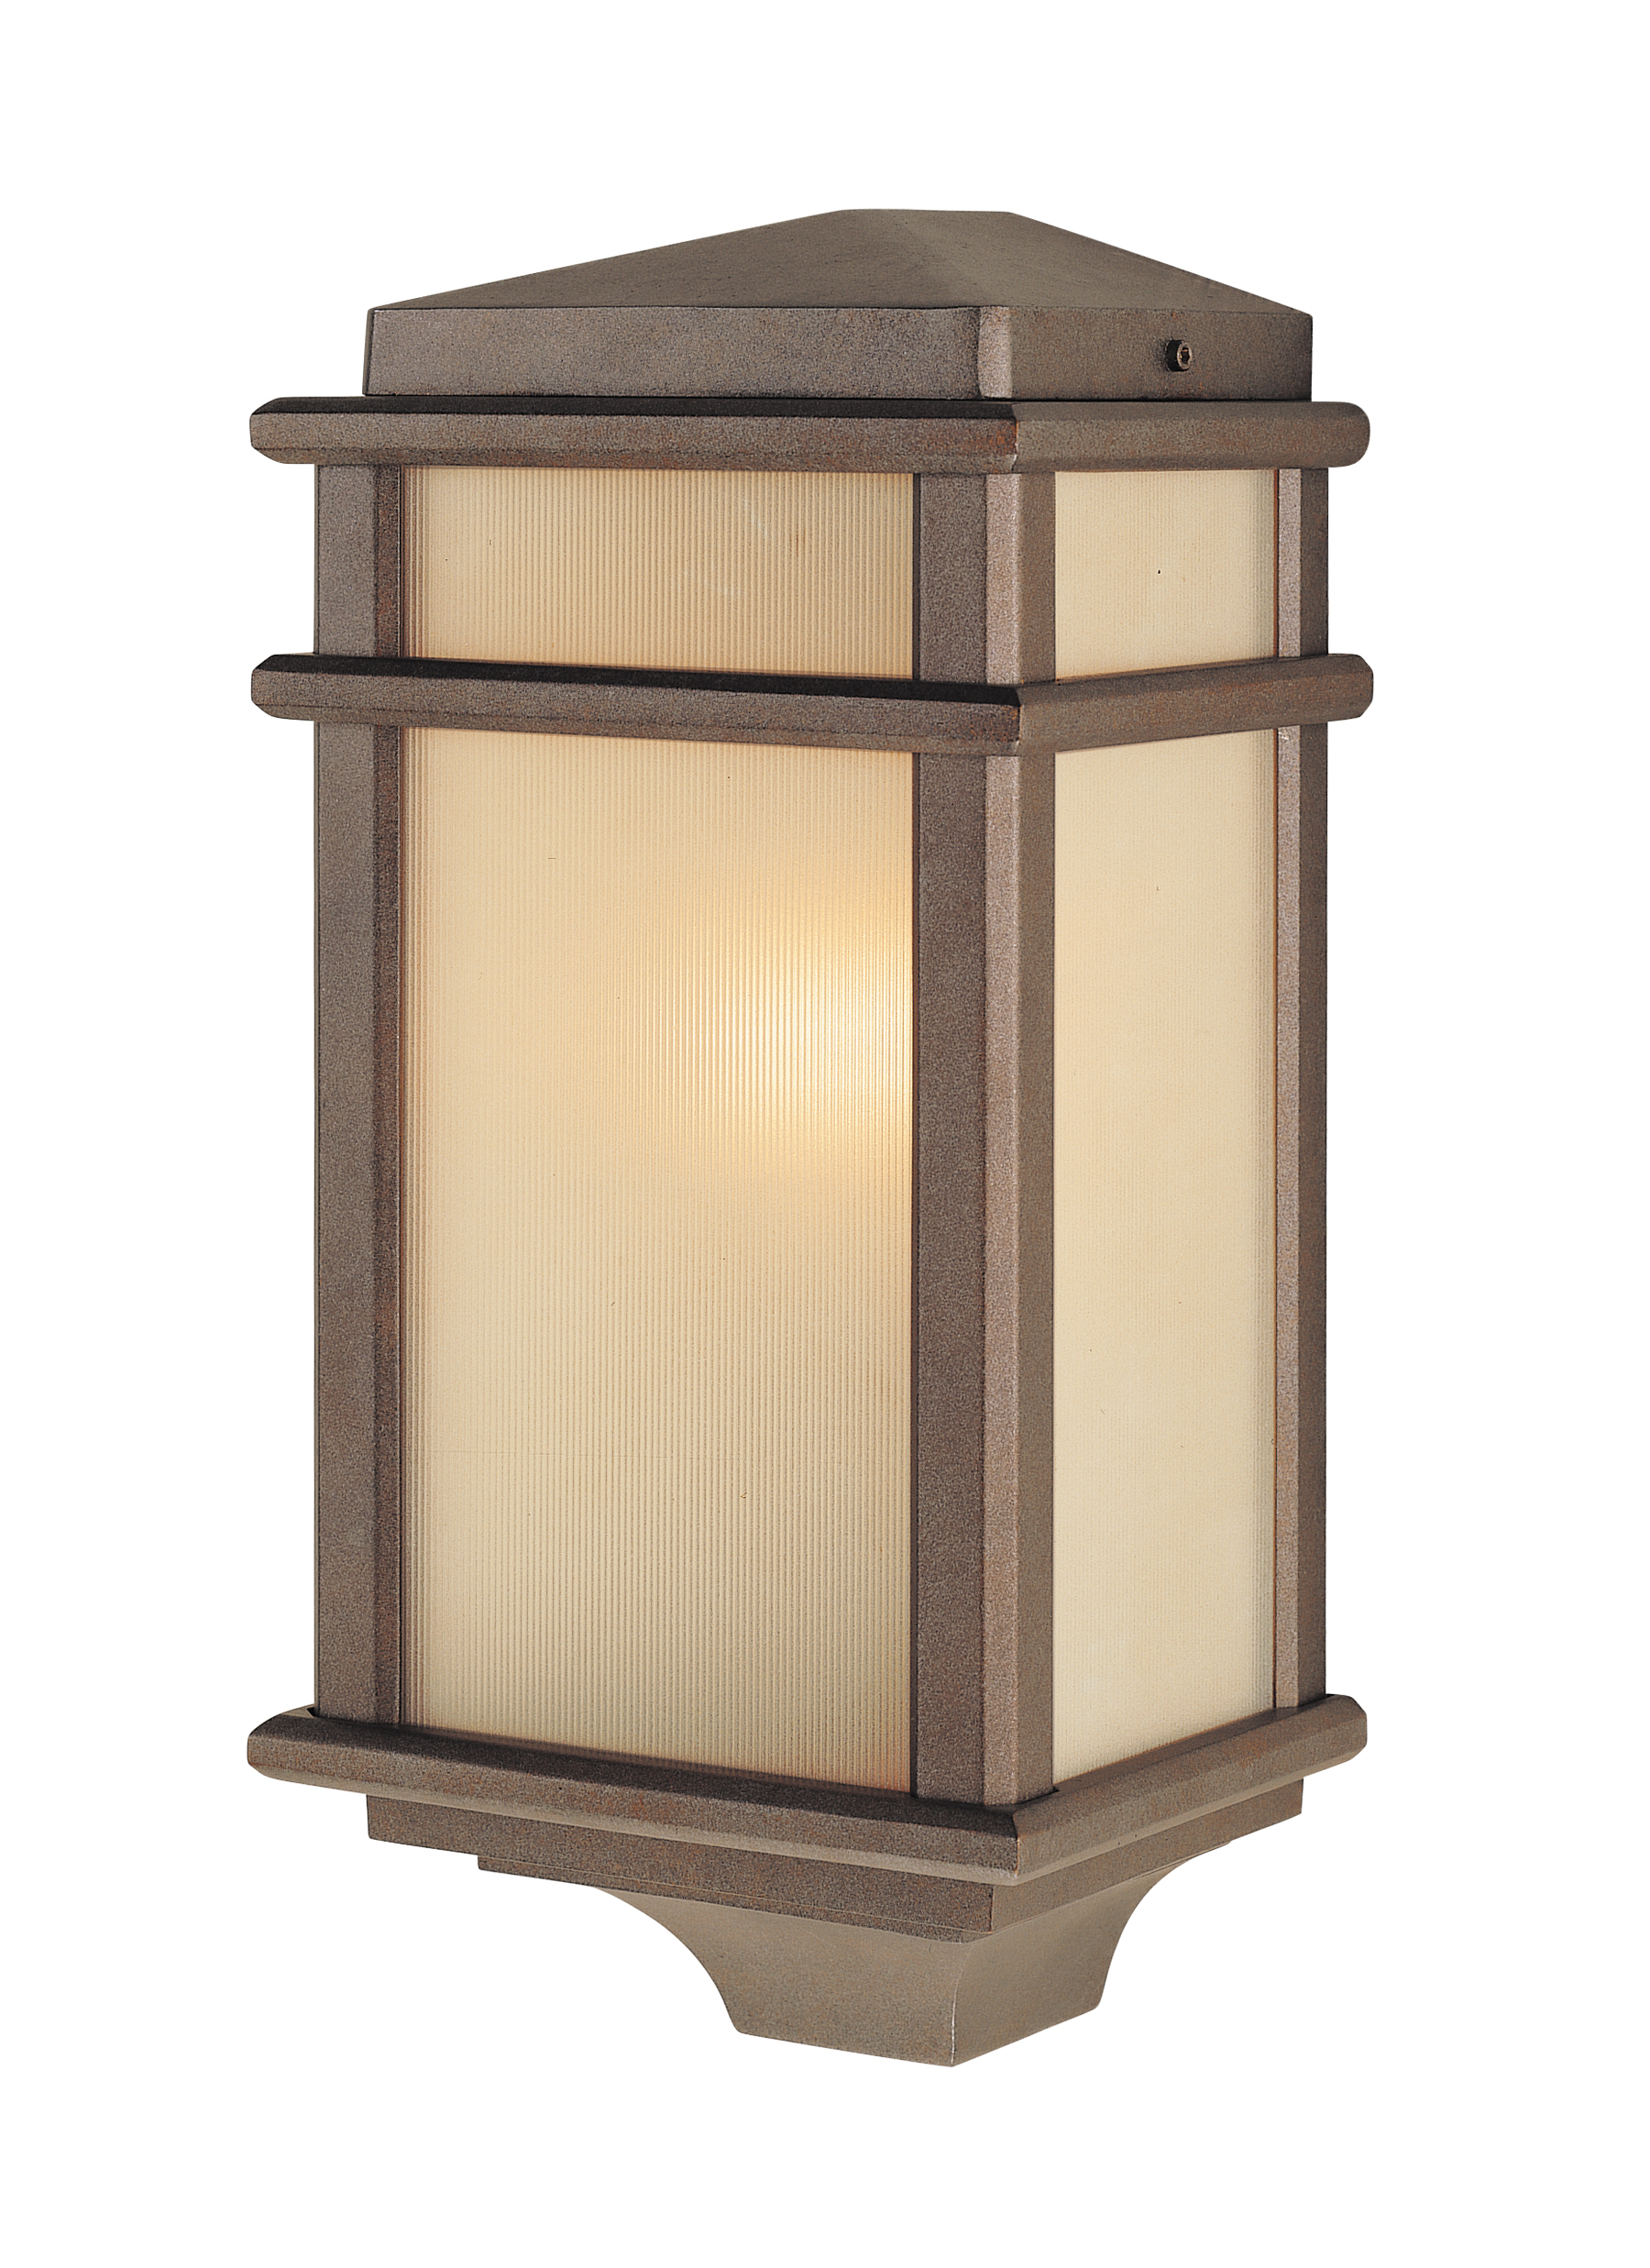 Murray Feiss Outdoor Lighting Ol3403cb1 light wall lanterncorinthian bronze loading zoom workwithnaturefo